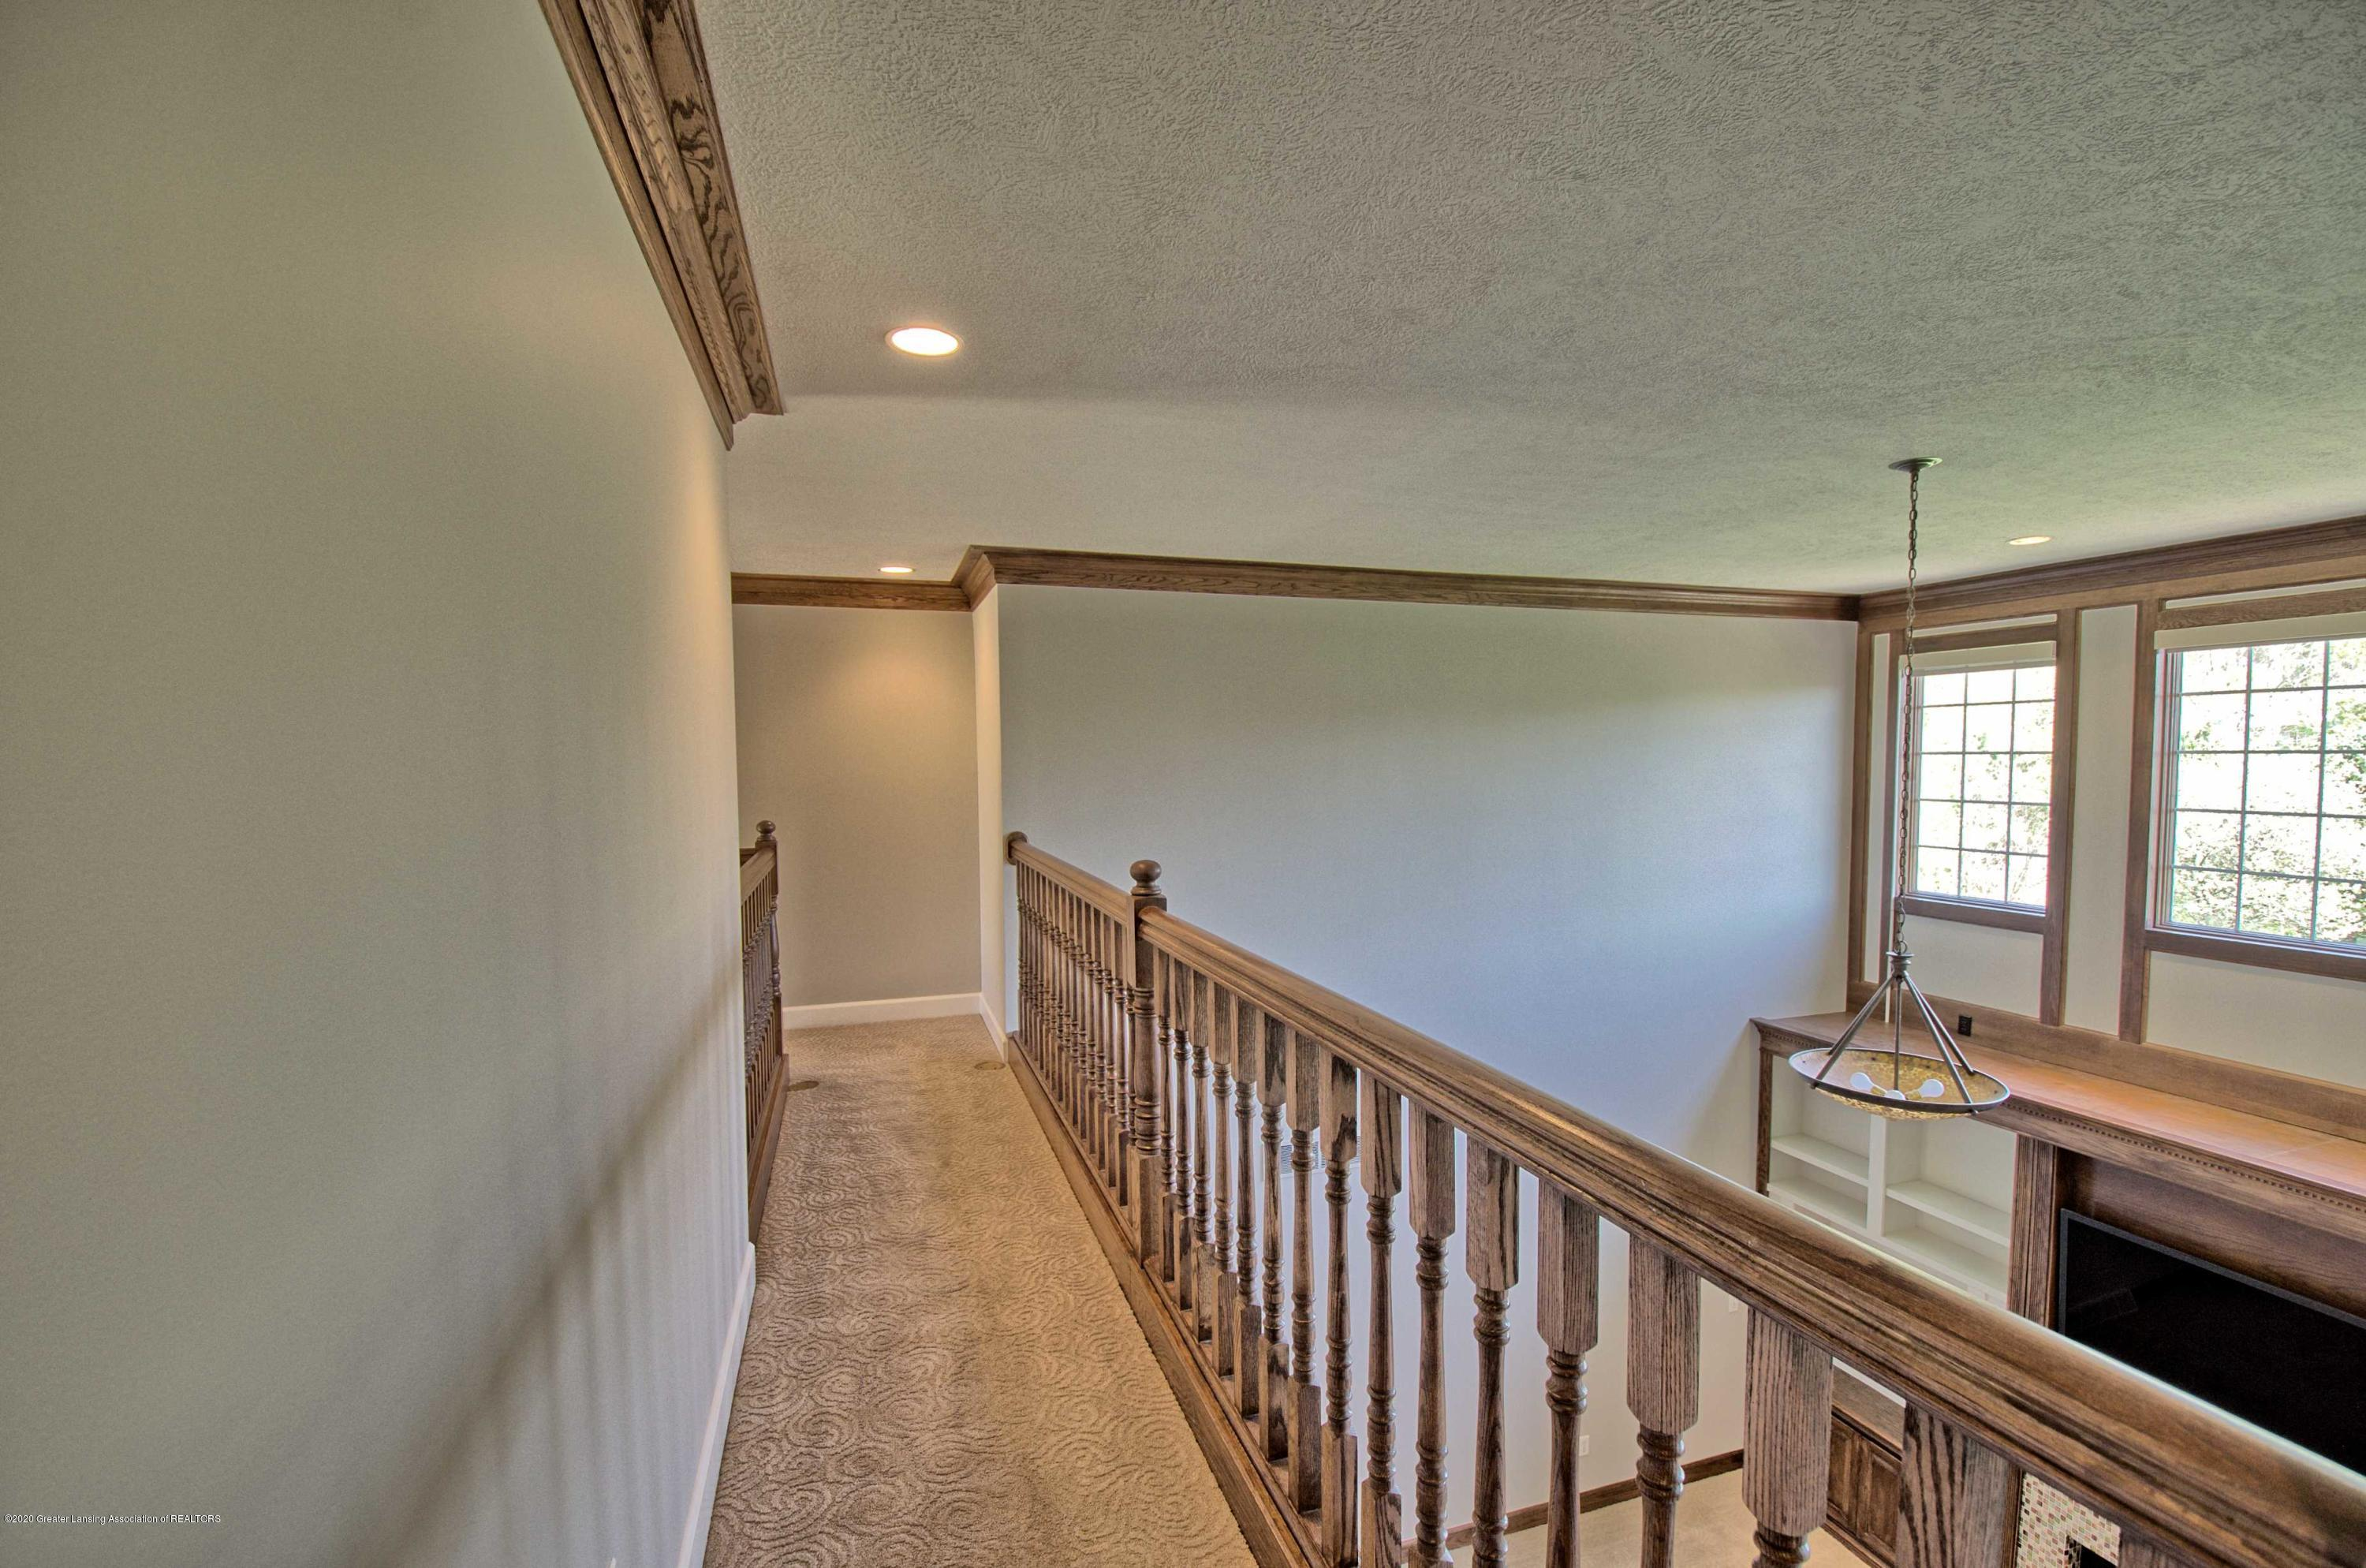 2615 Hummingbird Ln - UPSTAIRS HALLWAY - 25